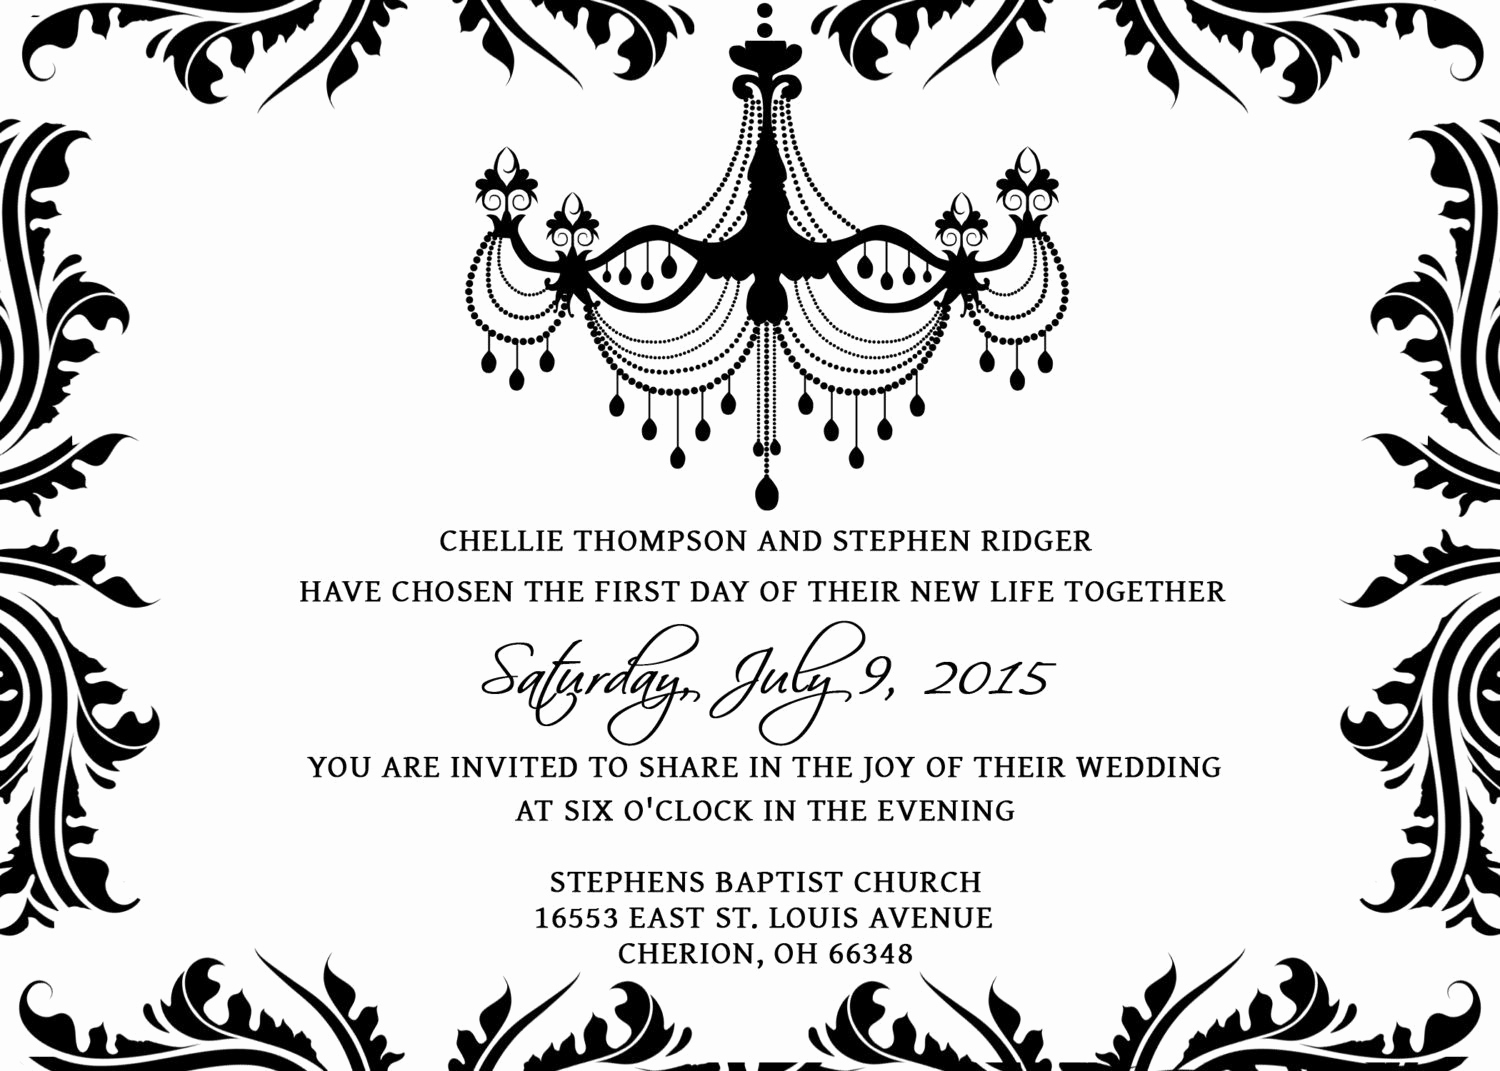 Black and White Invitation Template Luxury Black and White Blank Invitations